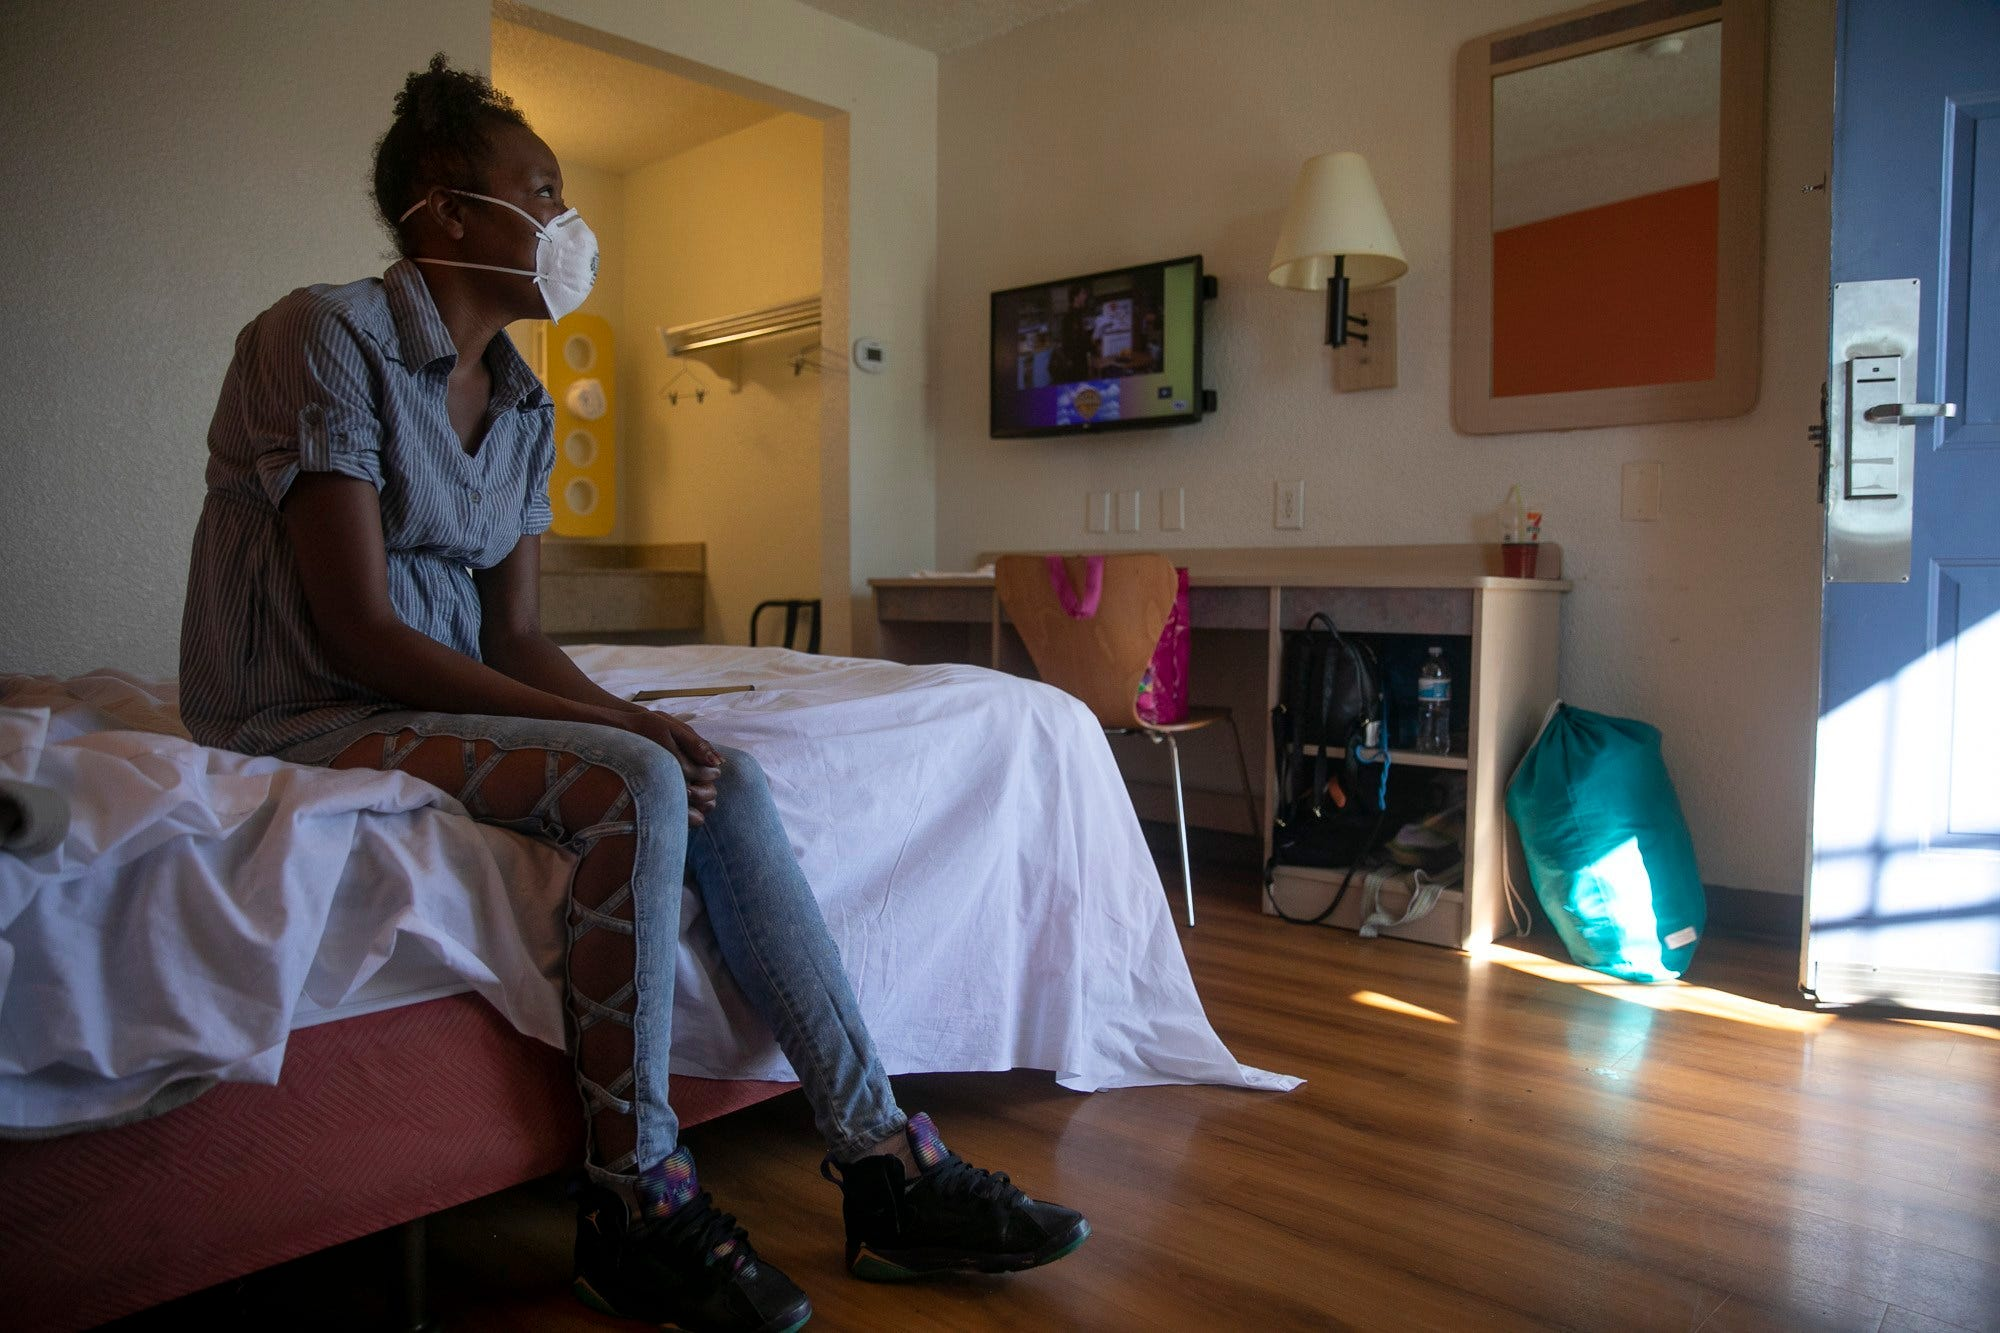 Jamie Burson sits on the bed of her motel room in Farfield on August 4, 2020. Burson, who has been living between her car and motels since being evicted in April, says she feels unsafe at the motel and plans to move again later later today.